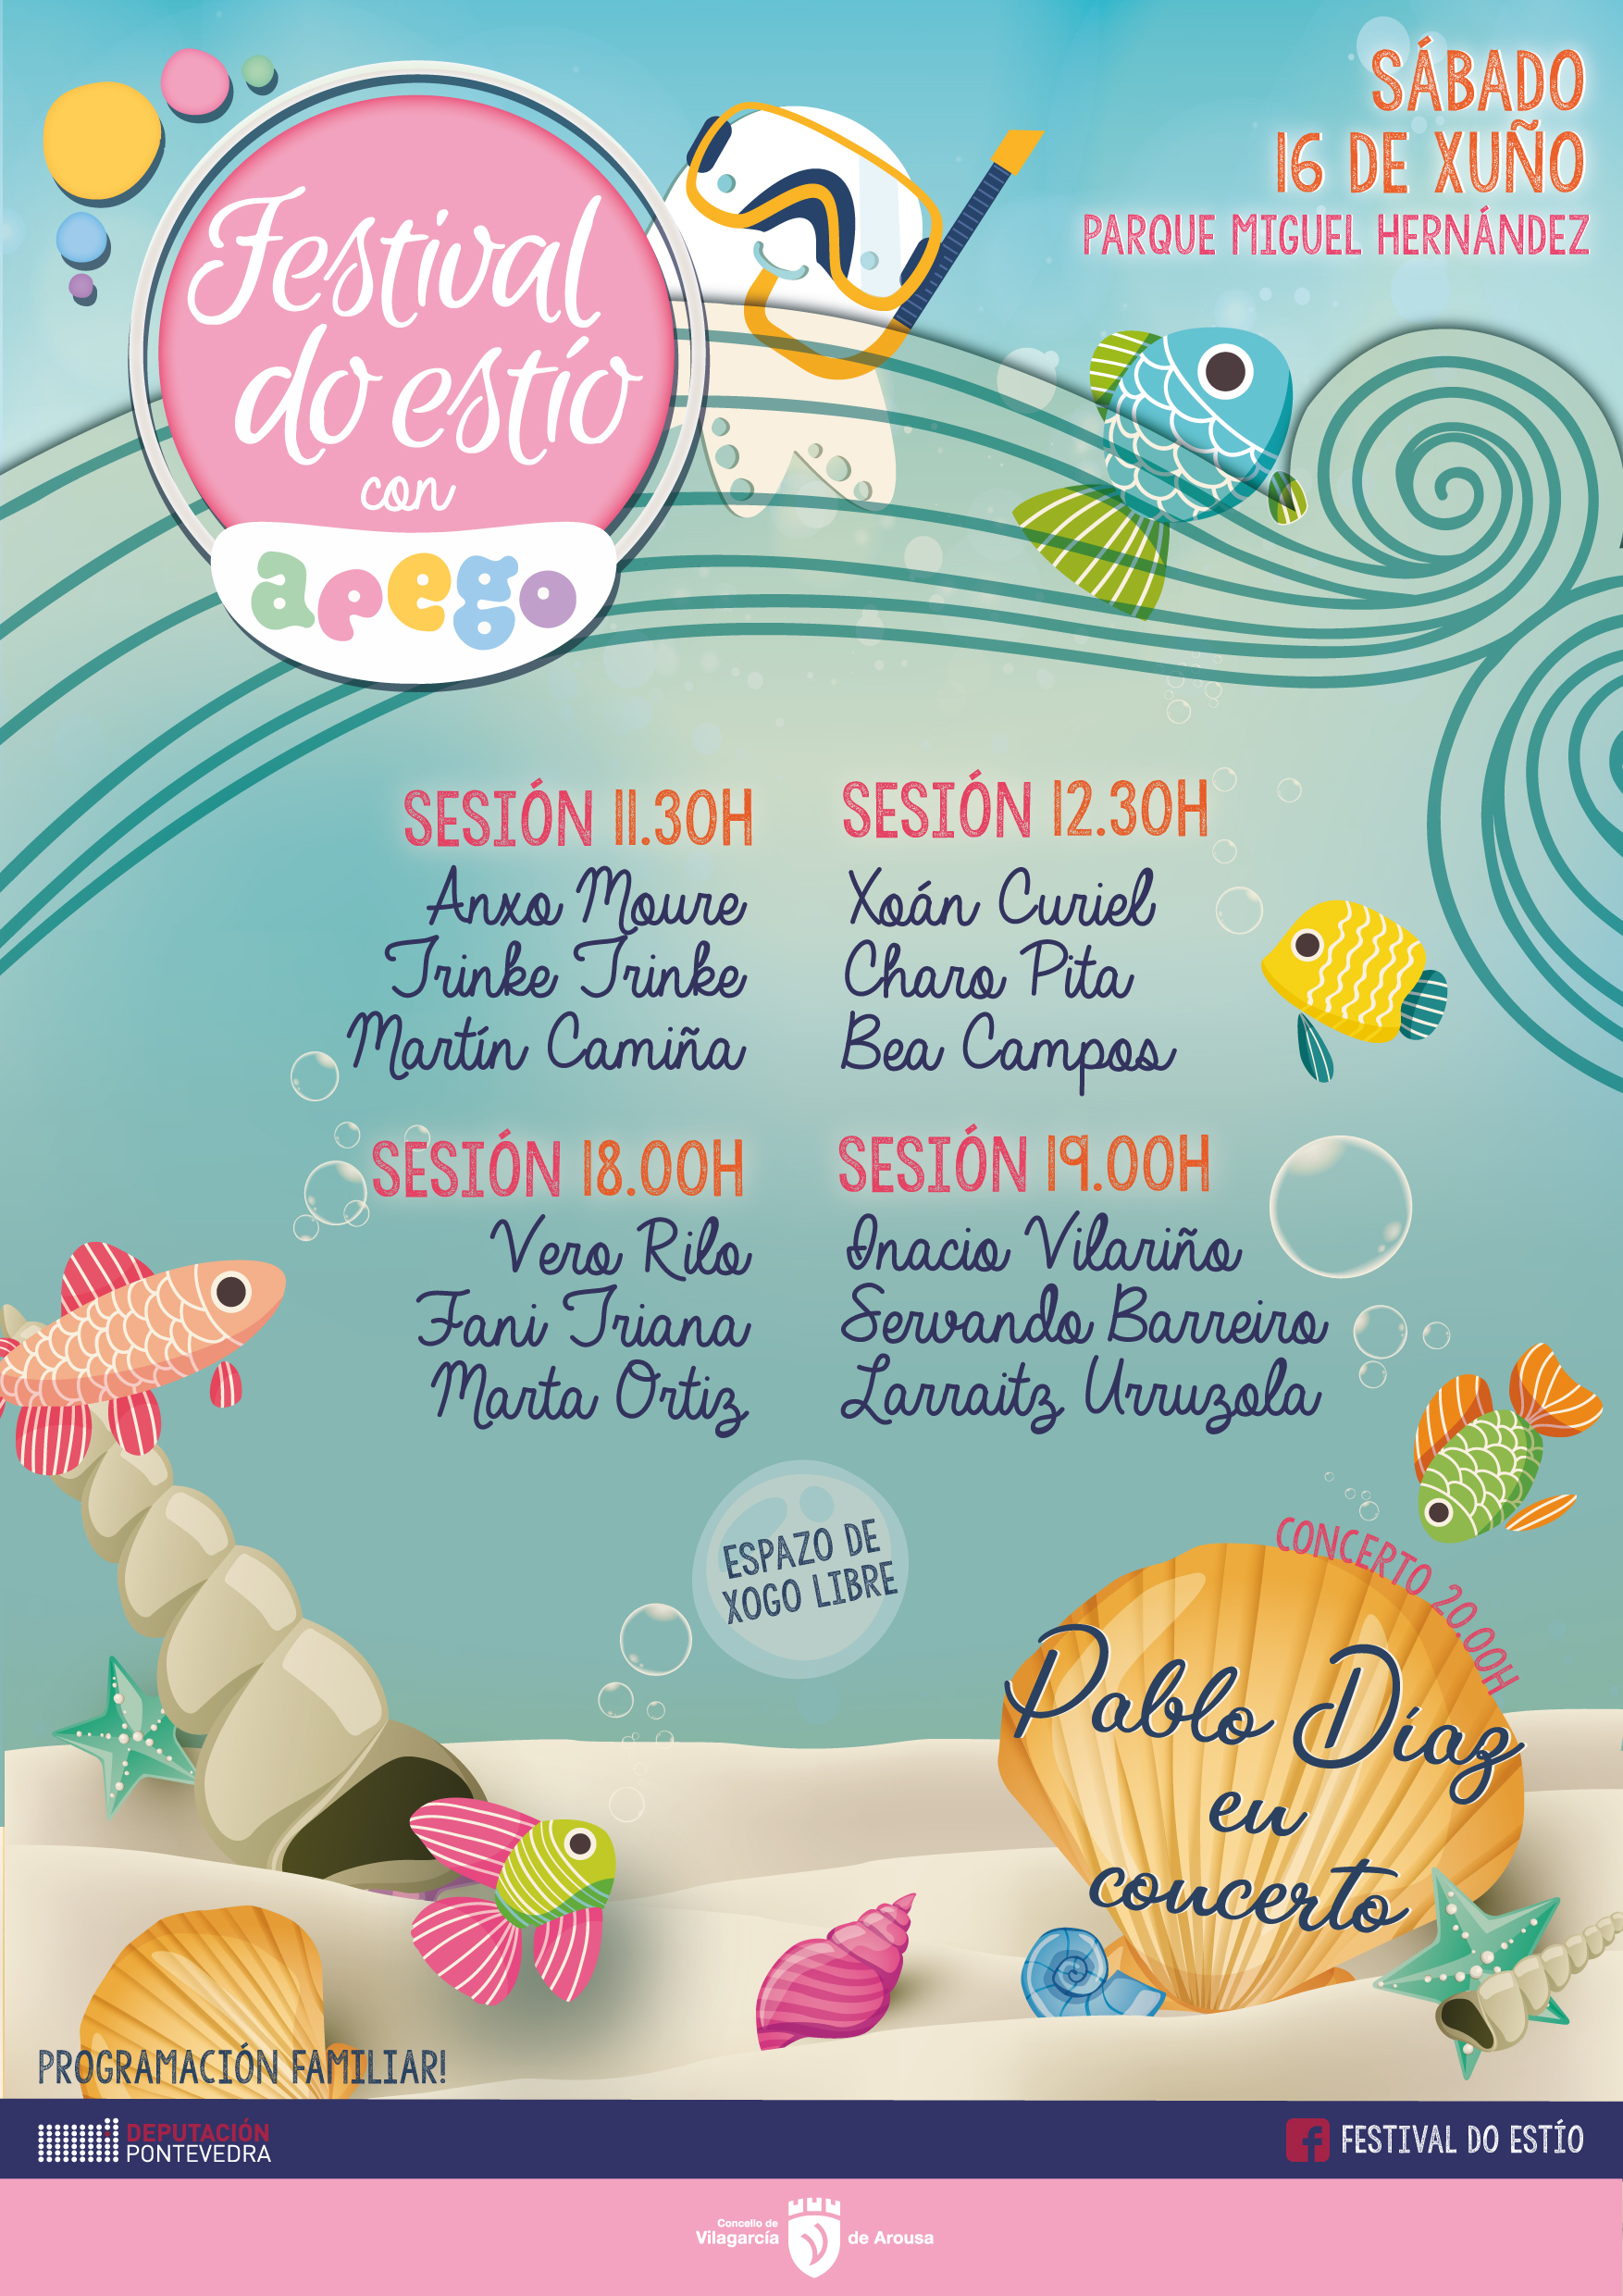 Cartel Festa do estio con Apego 2018